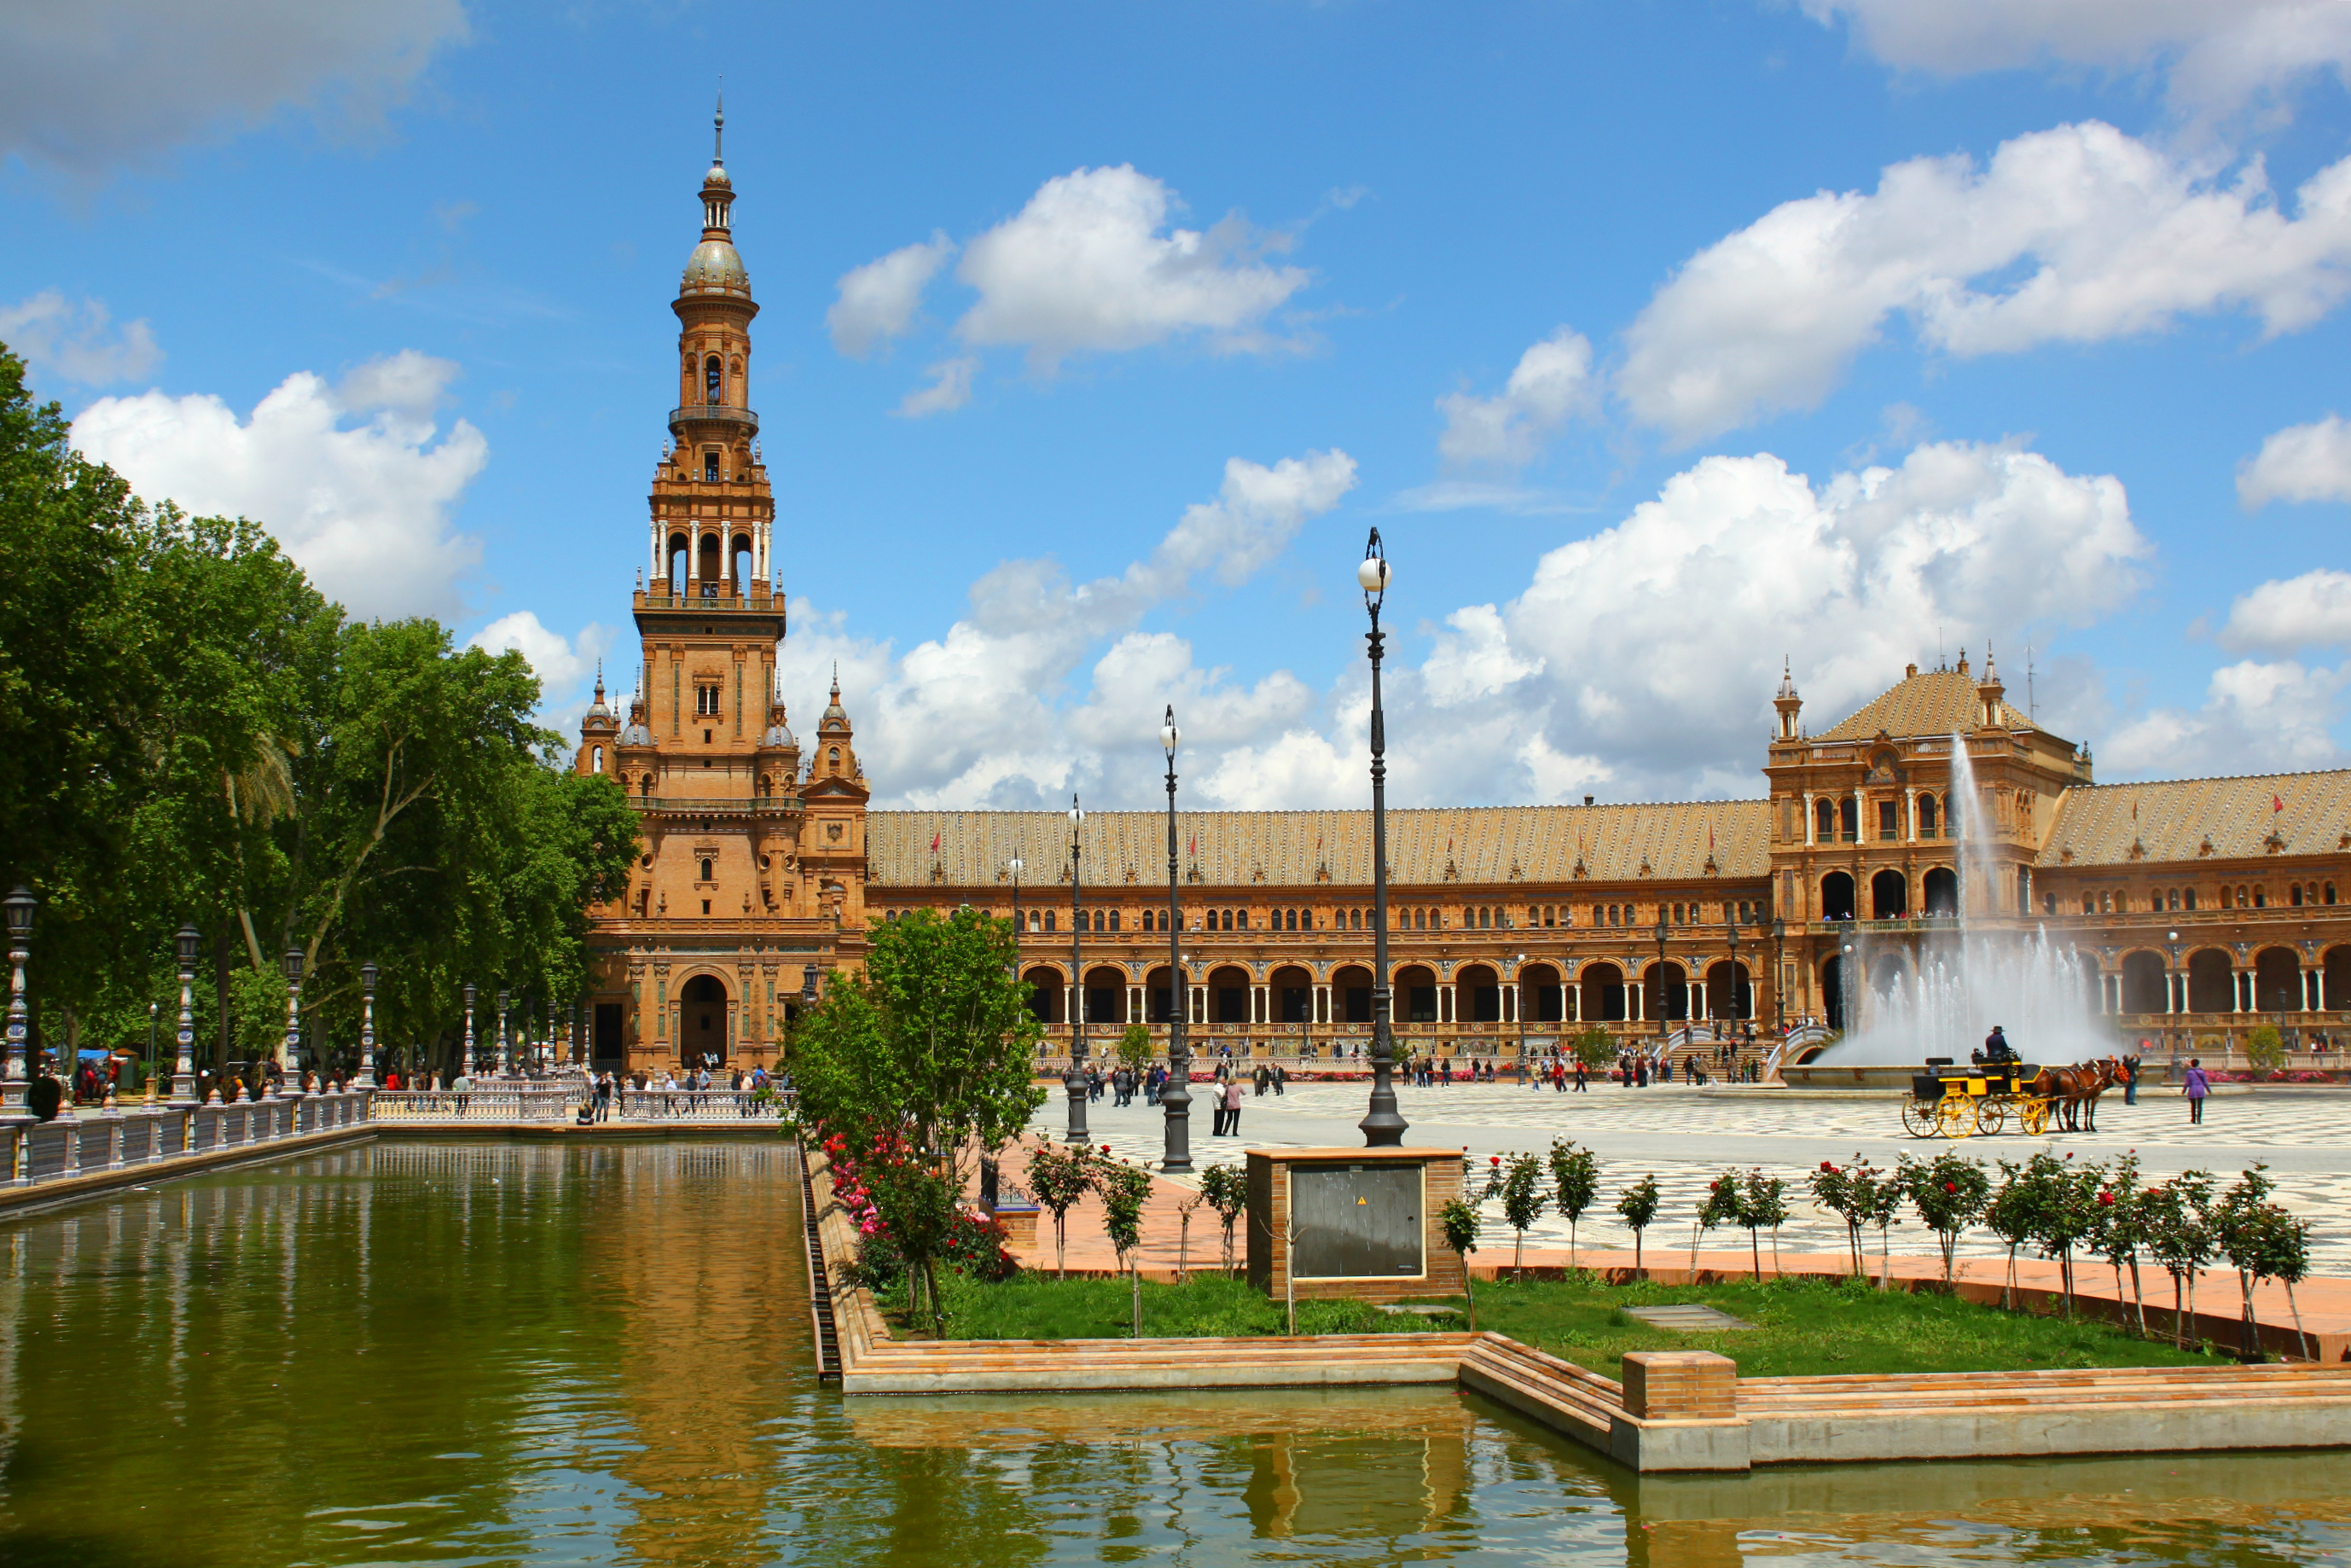 My awesome reader toby reminded me that the plaza de espa 241 a has tiled